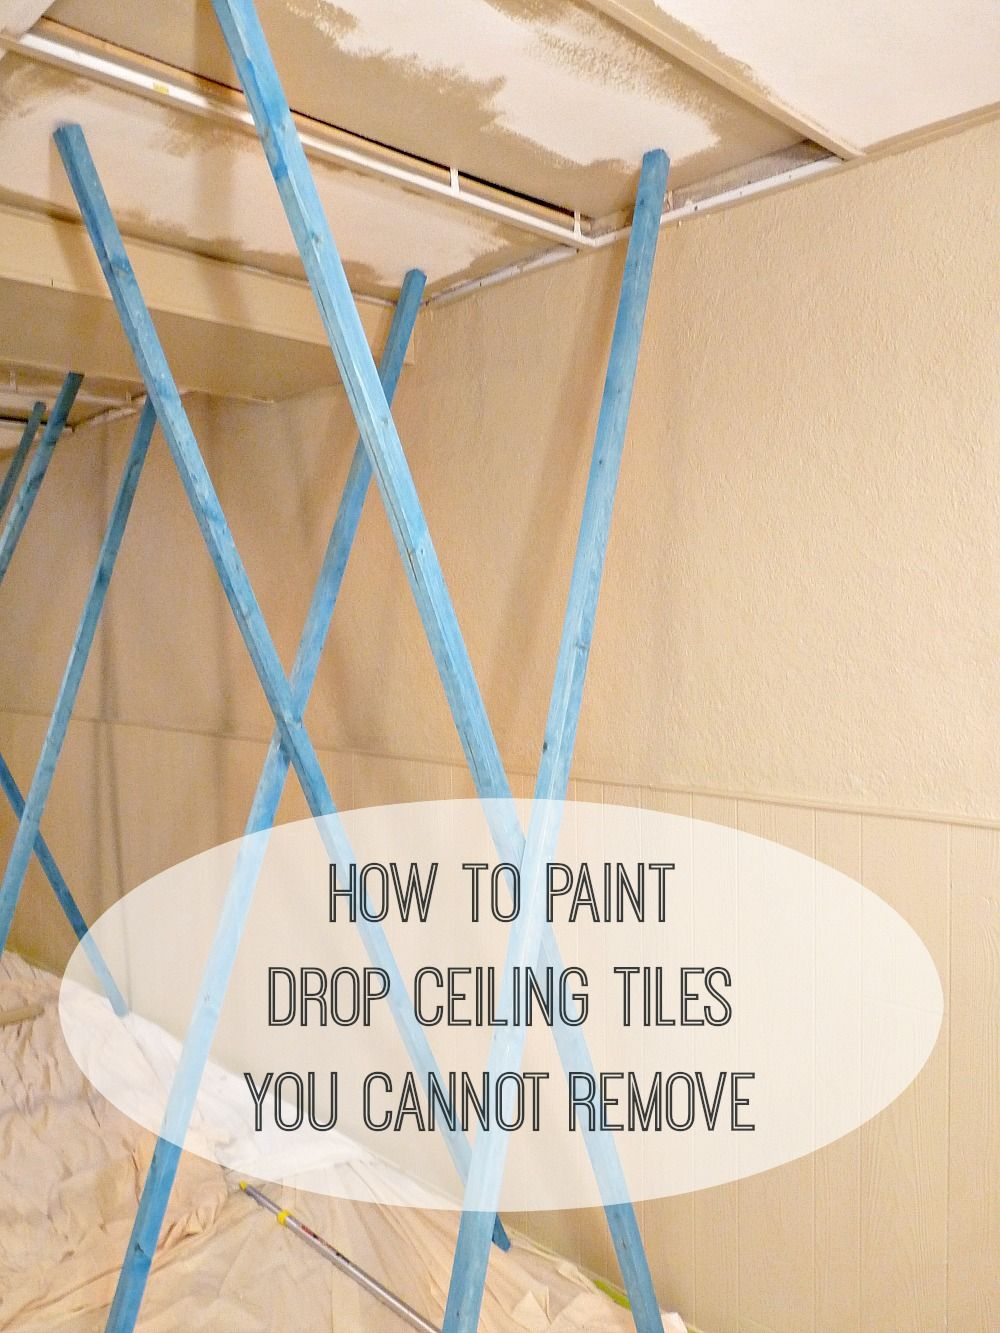 Basement update how to paint drop ceilings you cannot remove basement update how to paint drop ceilings you cannot remove dailygadgetfo Gallery